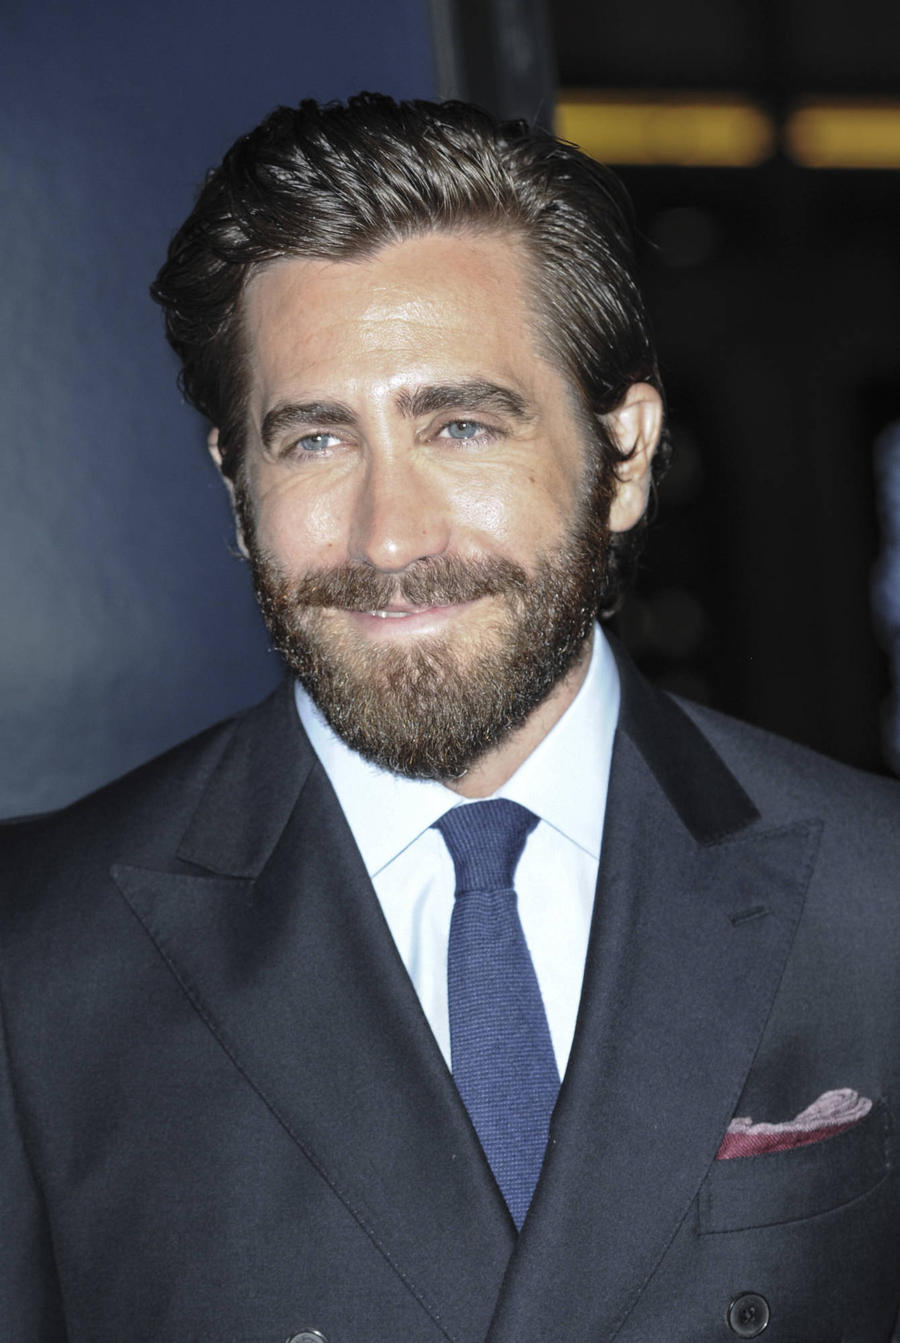 Jake Gyllenhaal Meets Hospital Patients In Surprise Visit